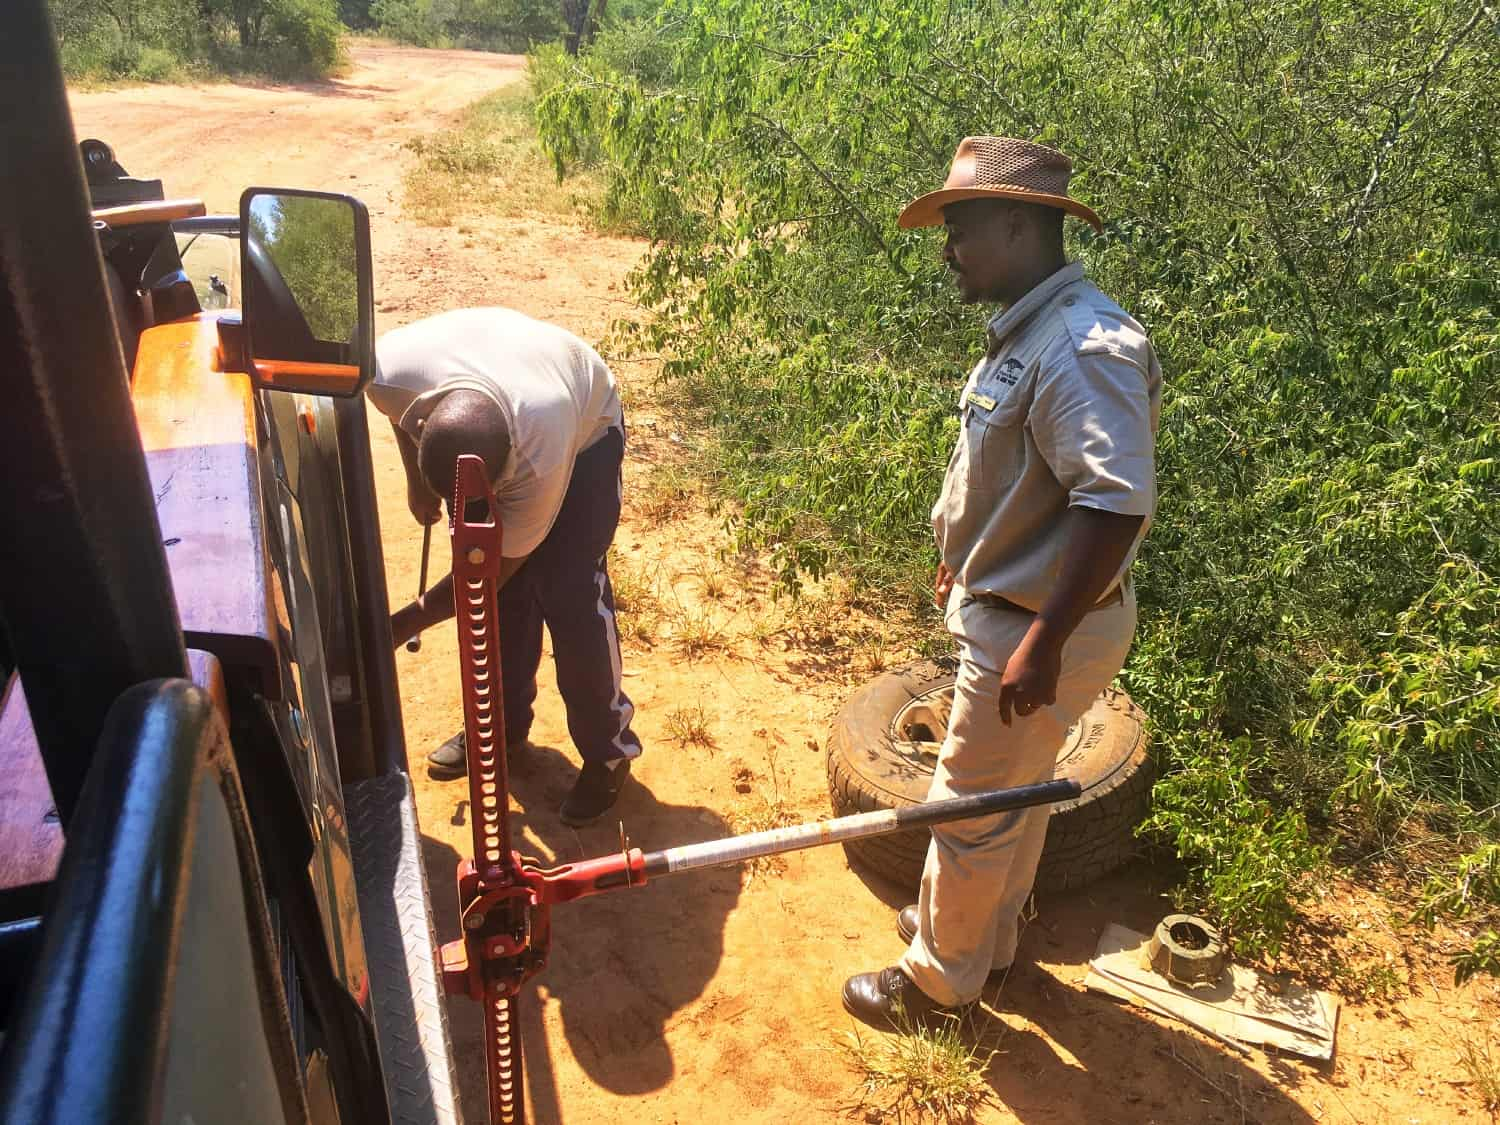 Changing a tire in Swaziland